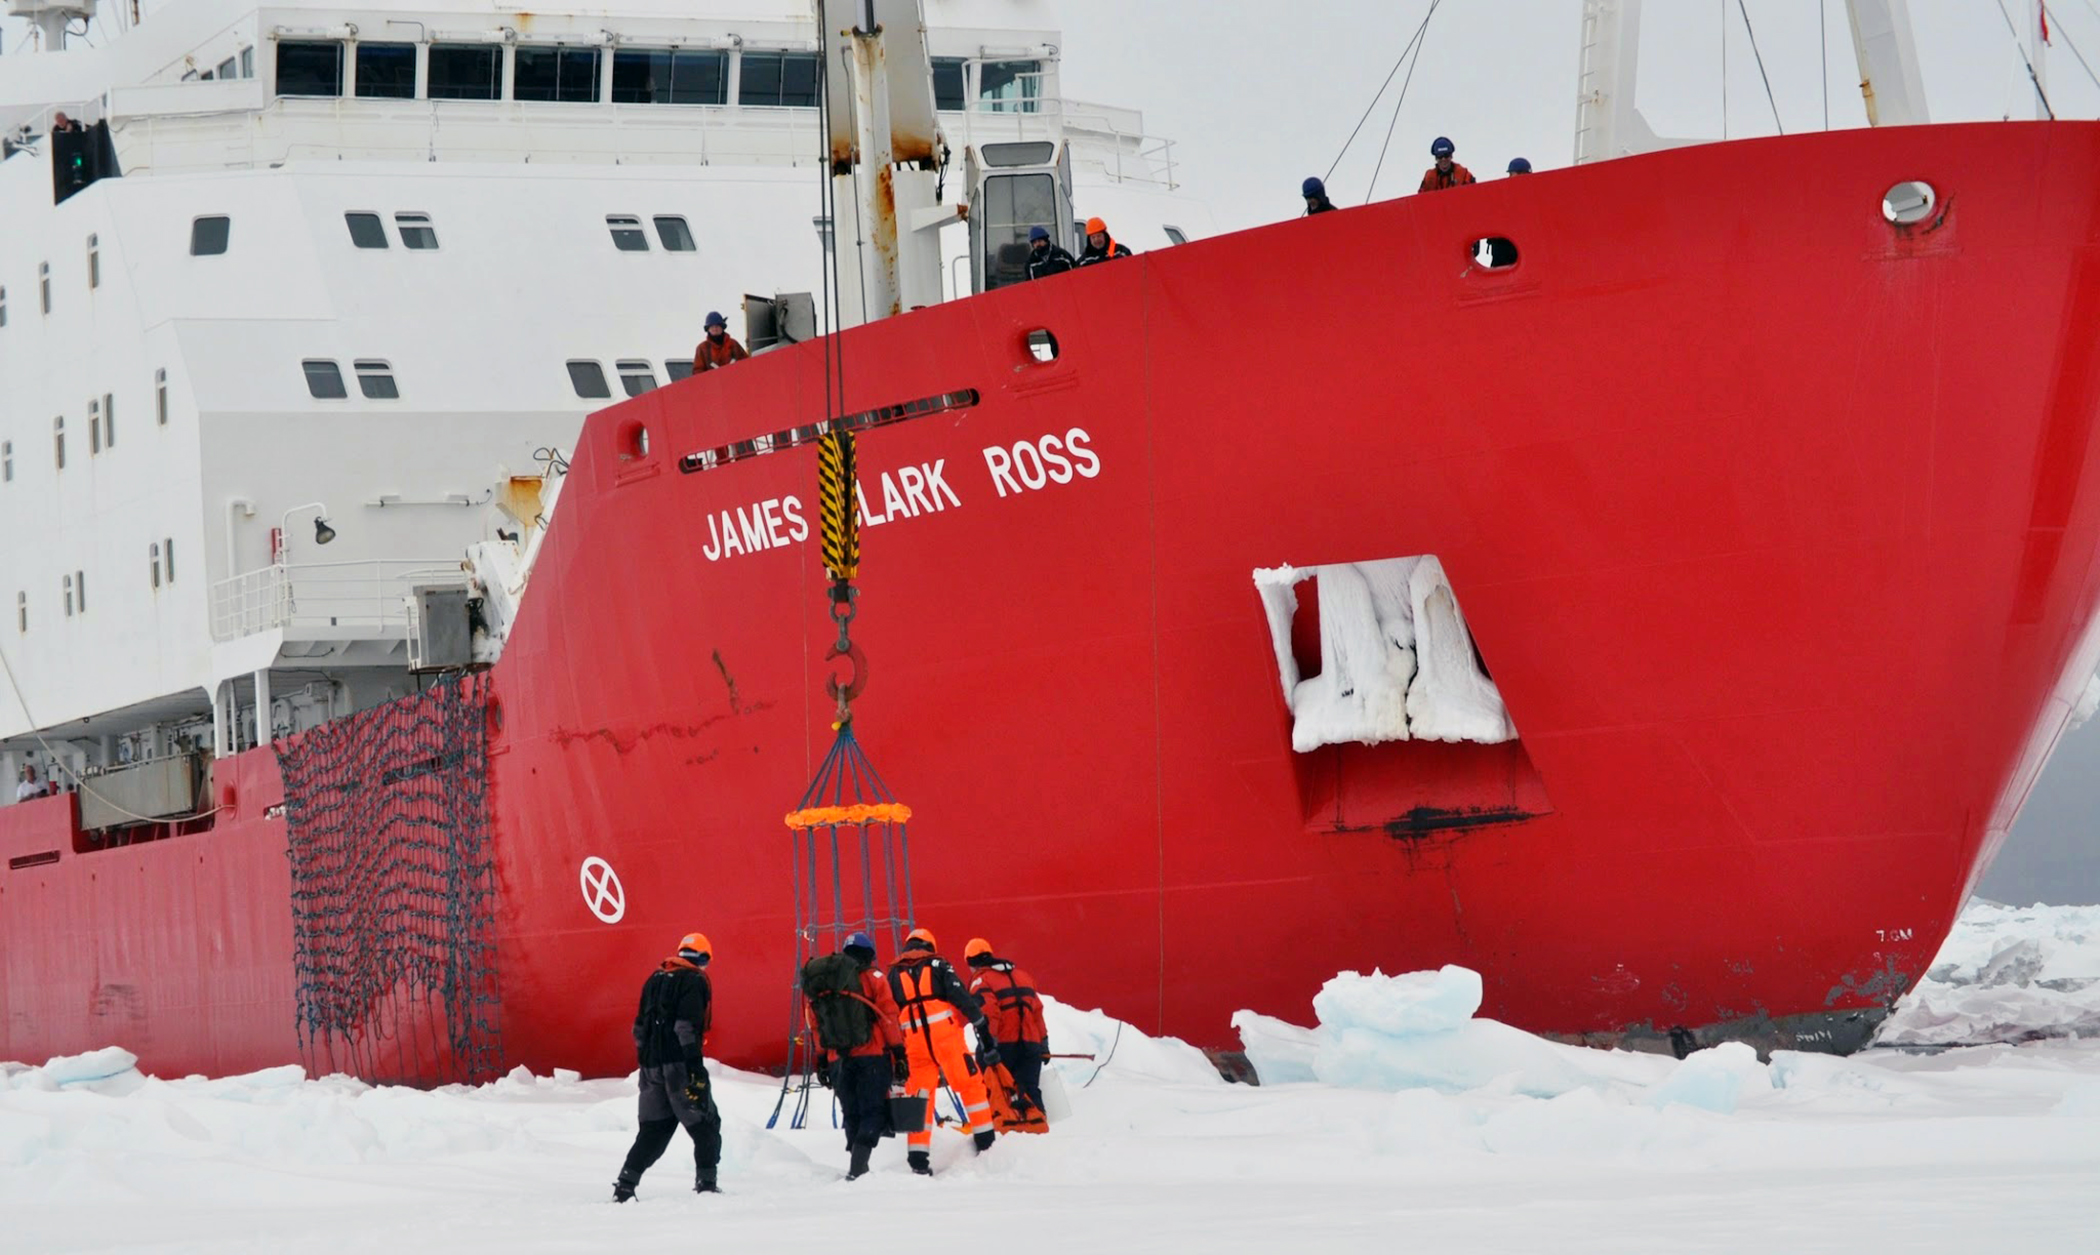 Scientists work alongside the icebreaker, the RRS James Clark Ross, in Antarctica in February 2014. (Photo courtesy of Brice Loose)